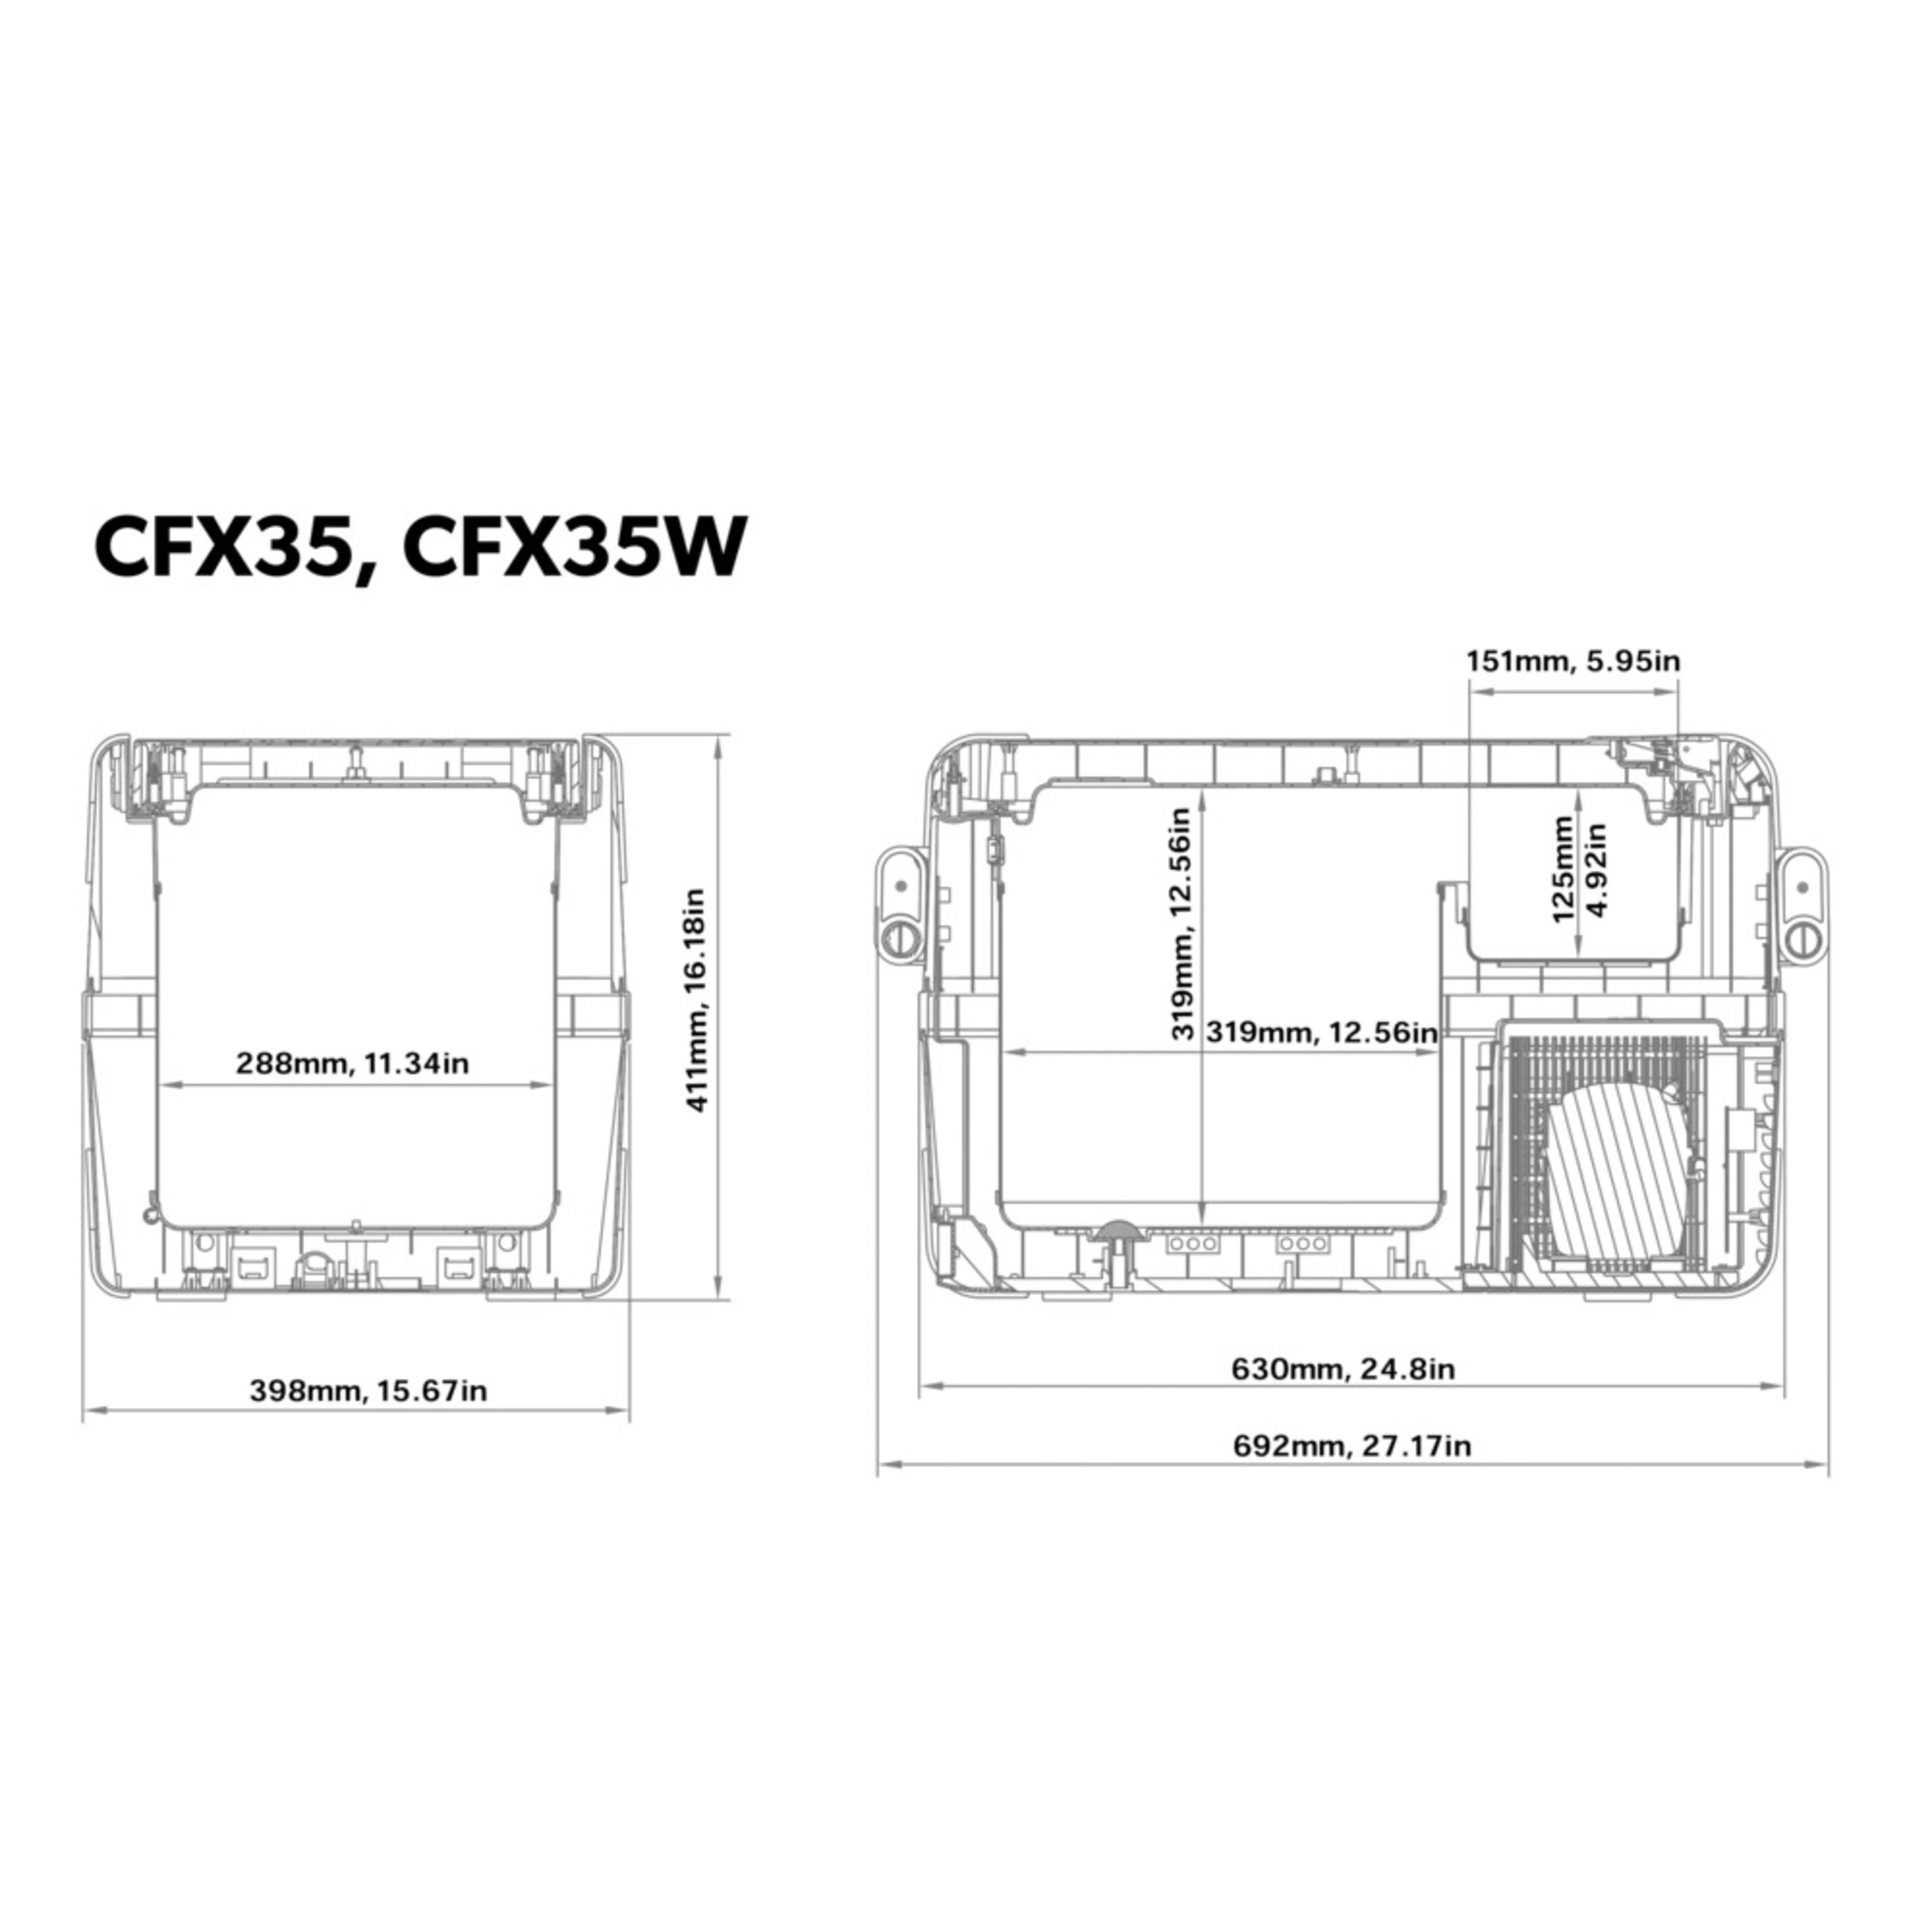 hight resolution of cfx 35w dimensions